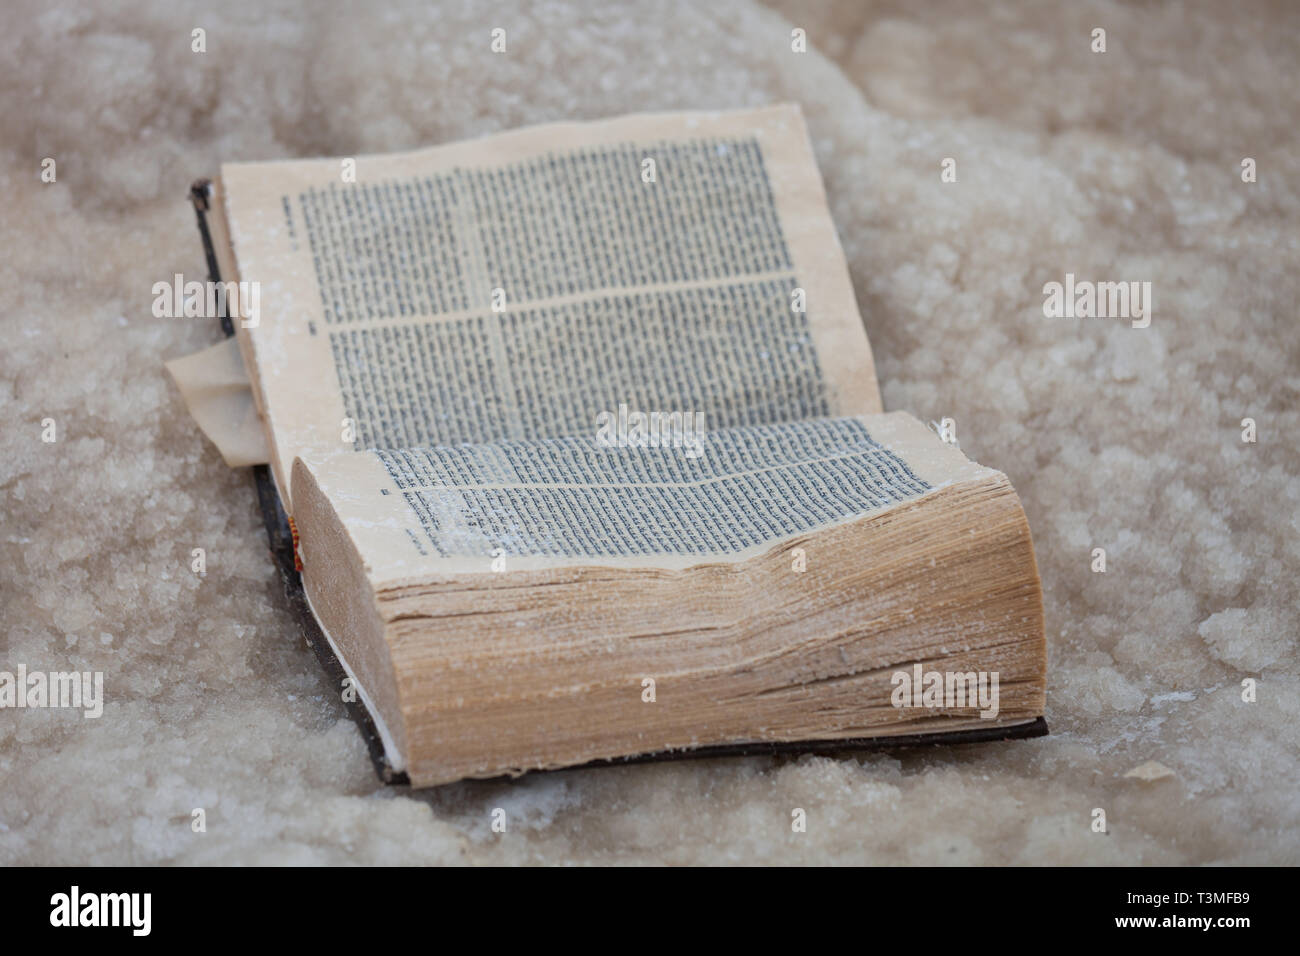 The forgotten old book covered with salt of the Dead sea. Israel. - Stock Image